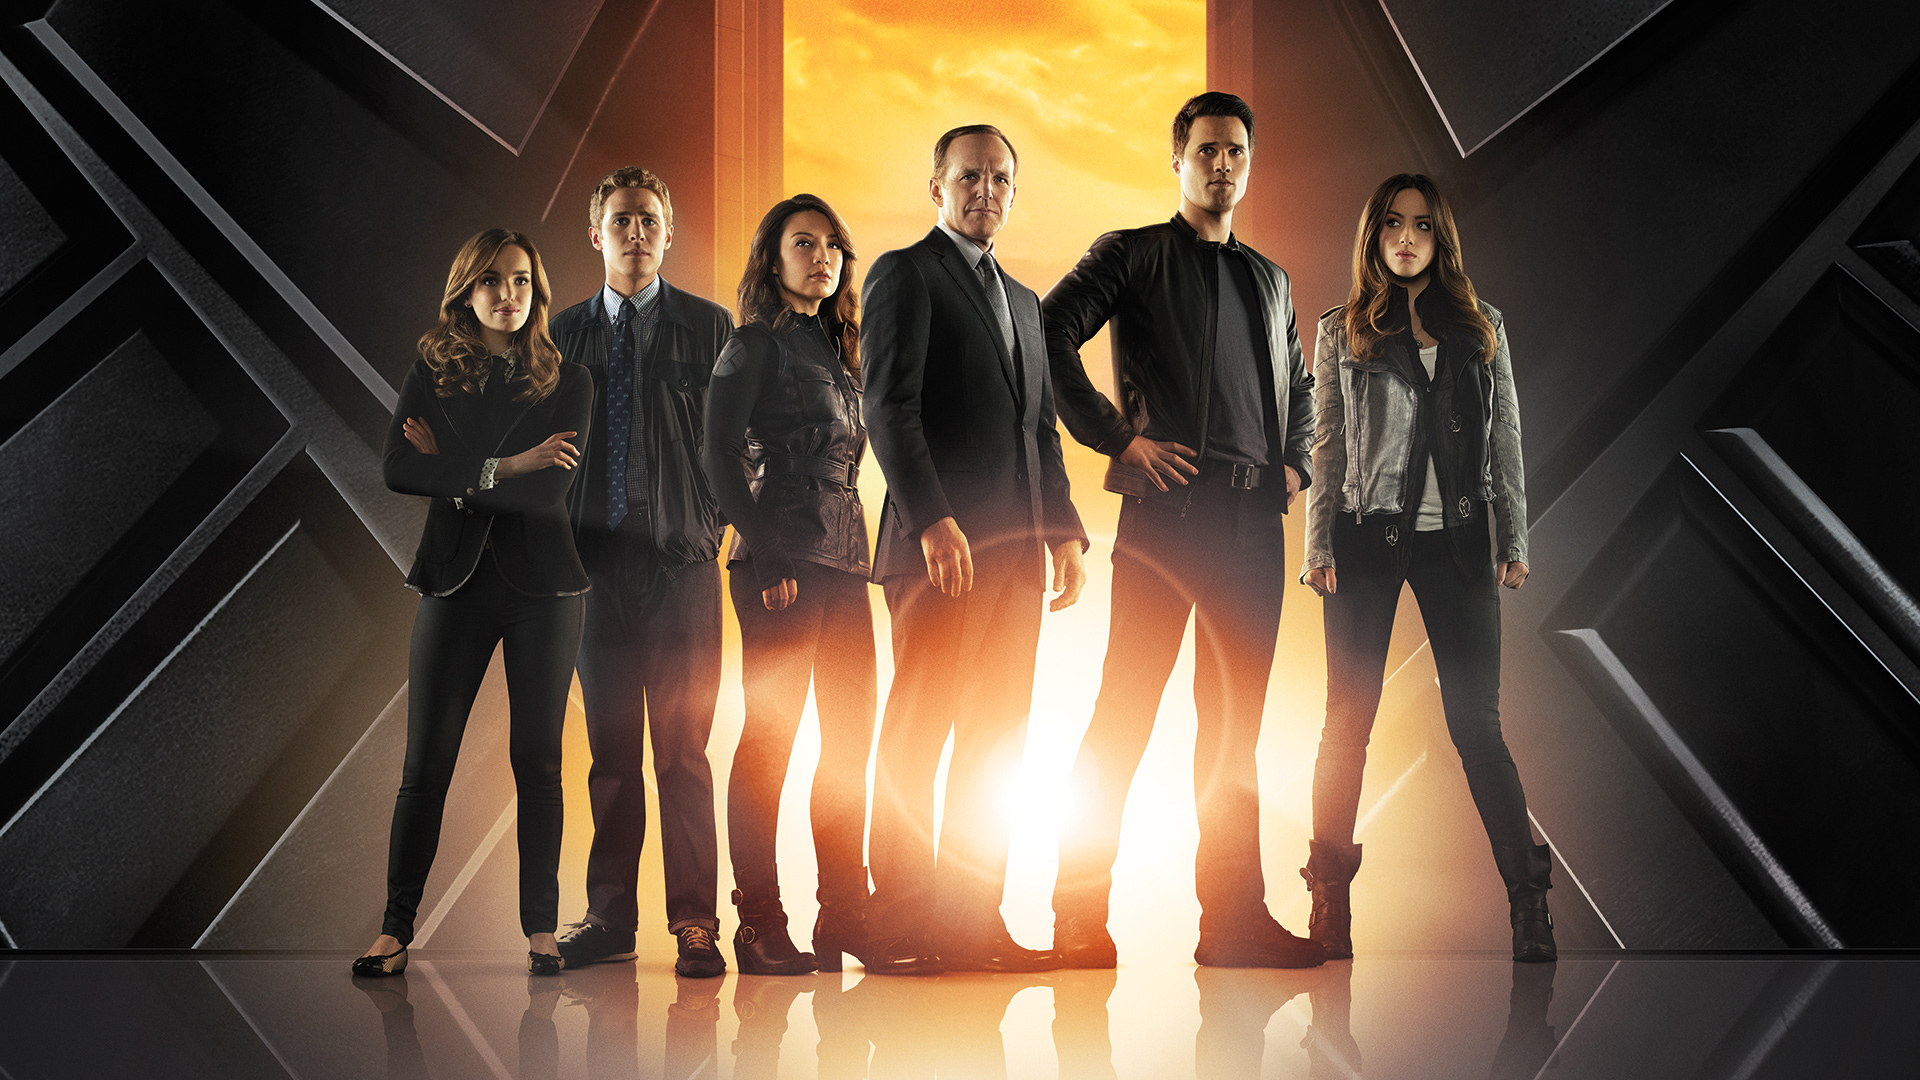 Agents of SHIELD season 2 sneak peek trailer